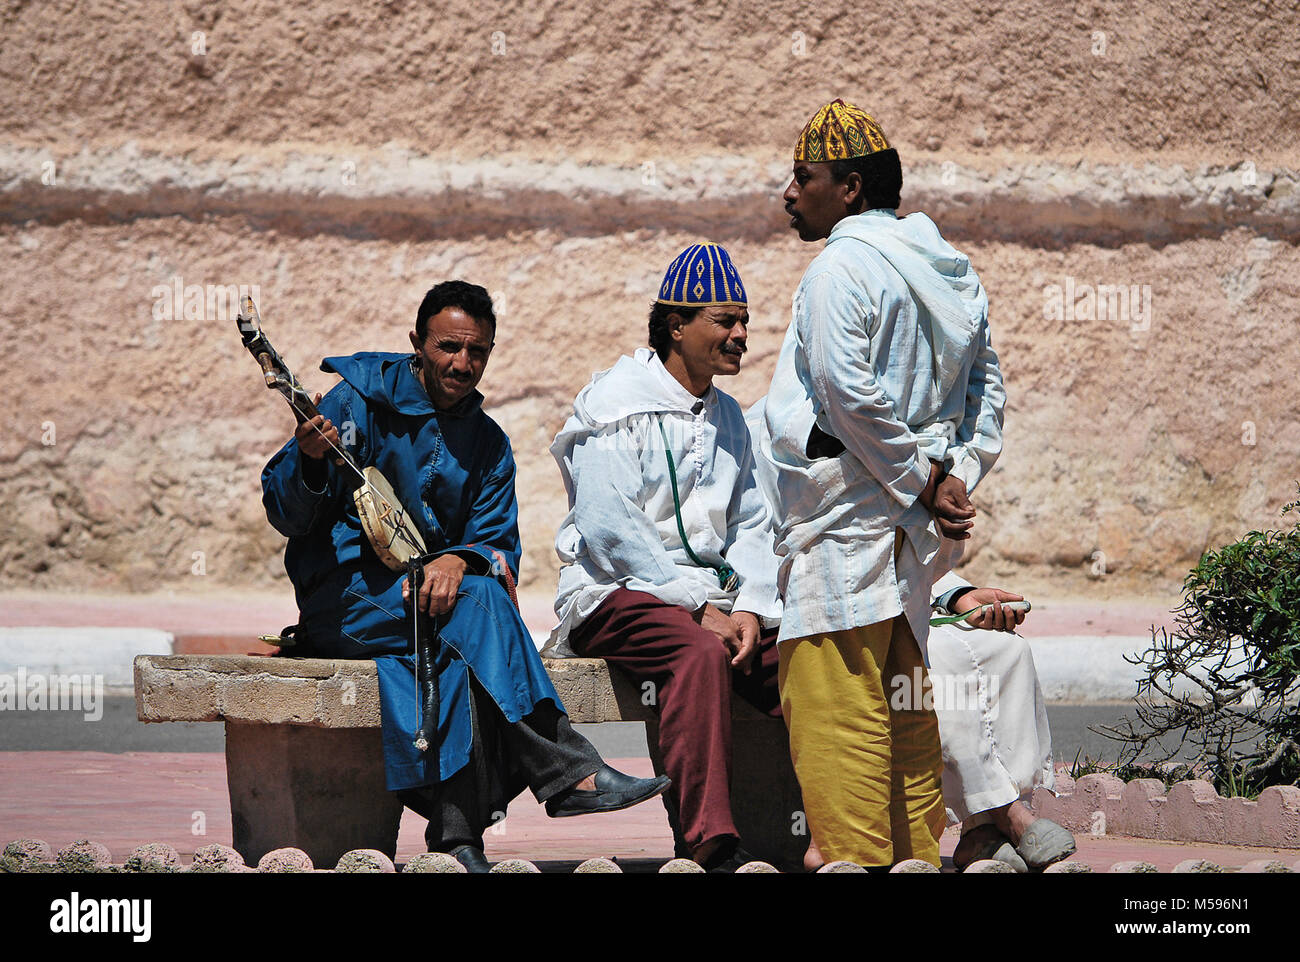 Relaxing time, Morocco - Stock Image